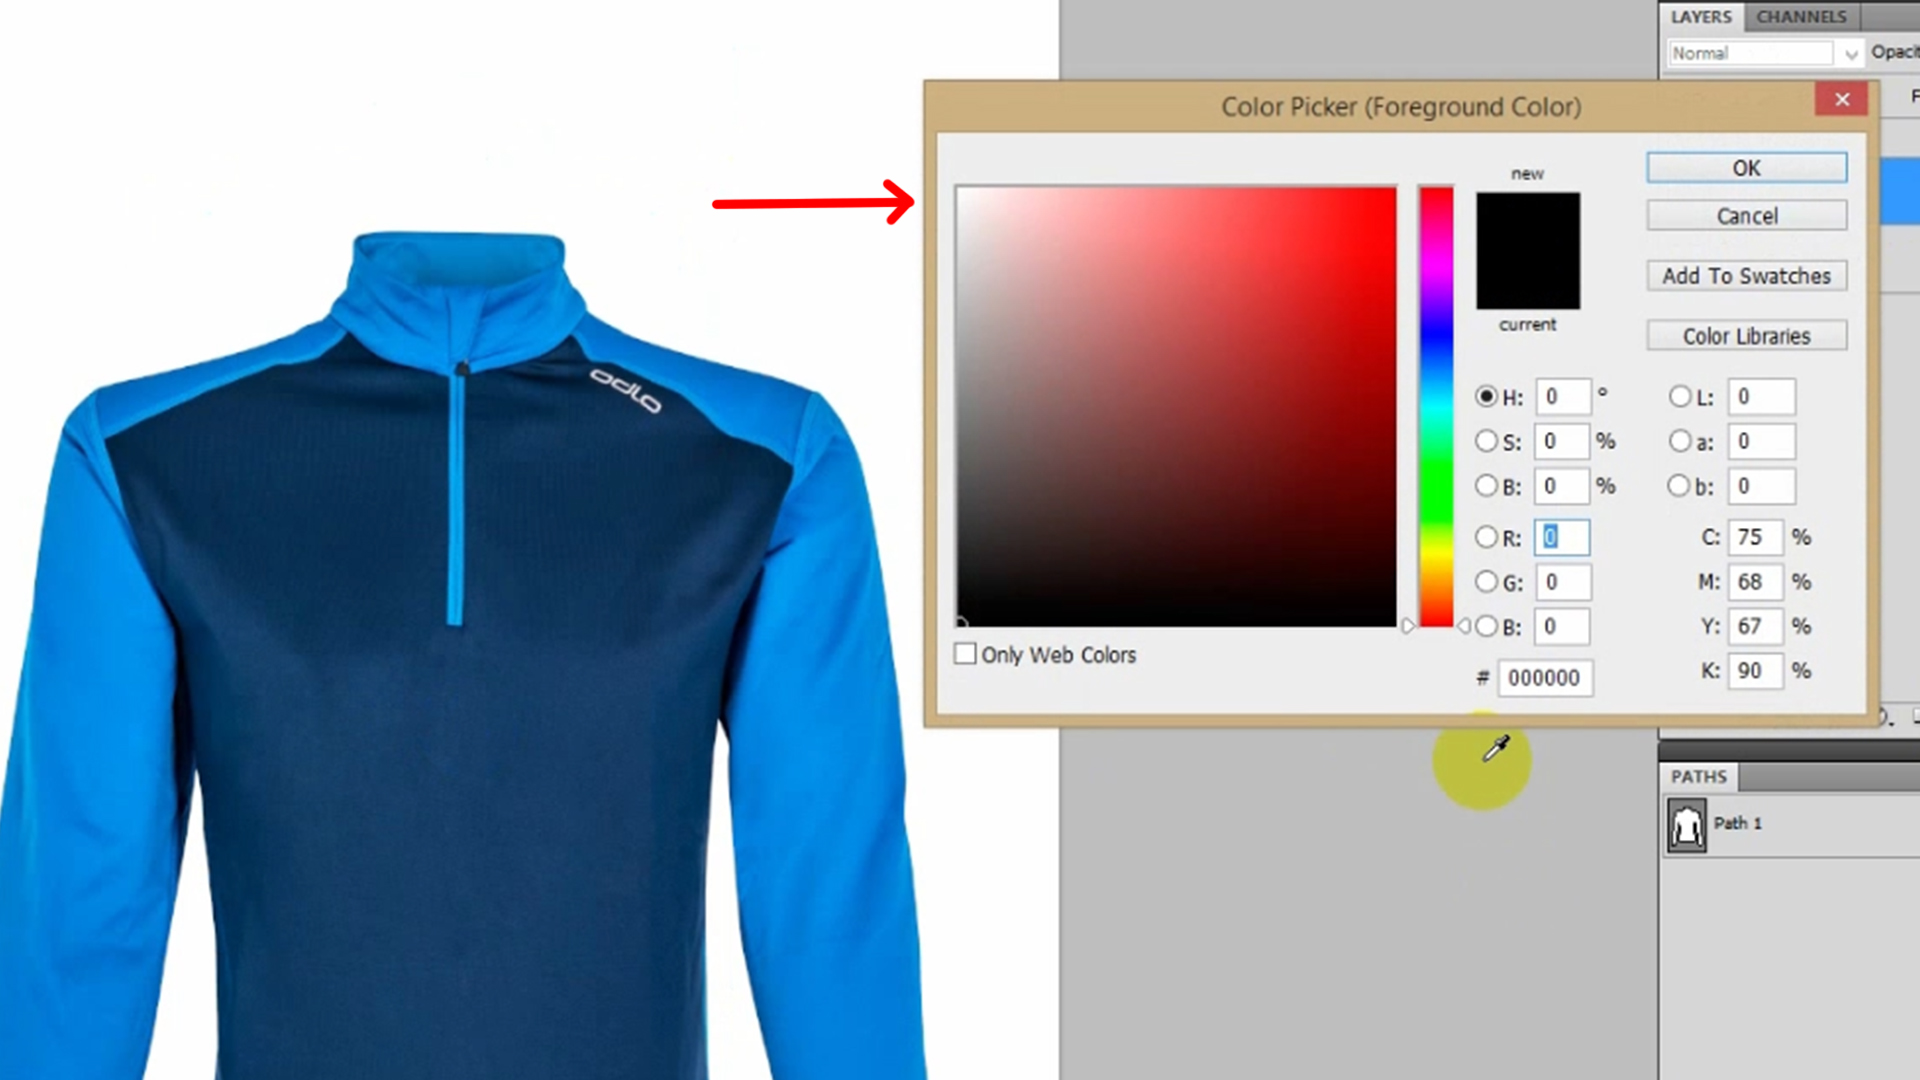 Check applying different color backgrounds, whether it is perfect or not